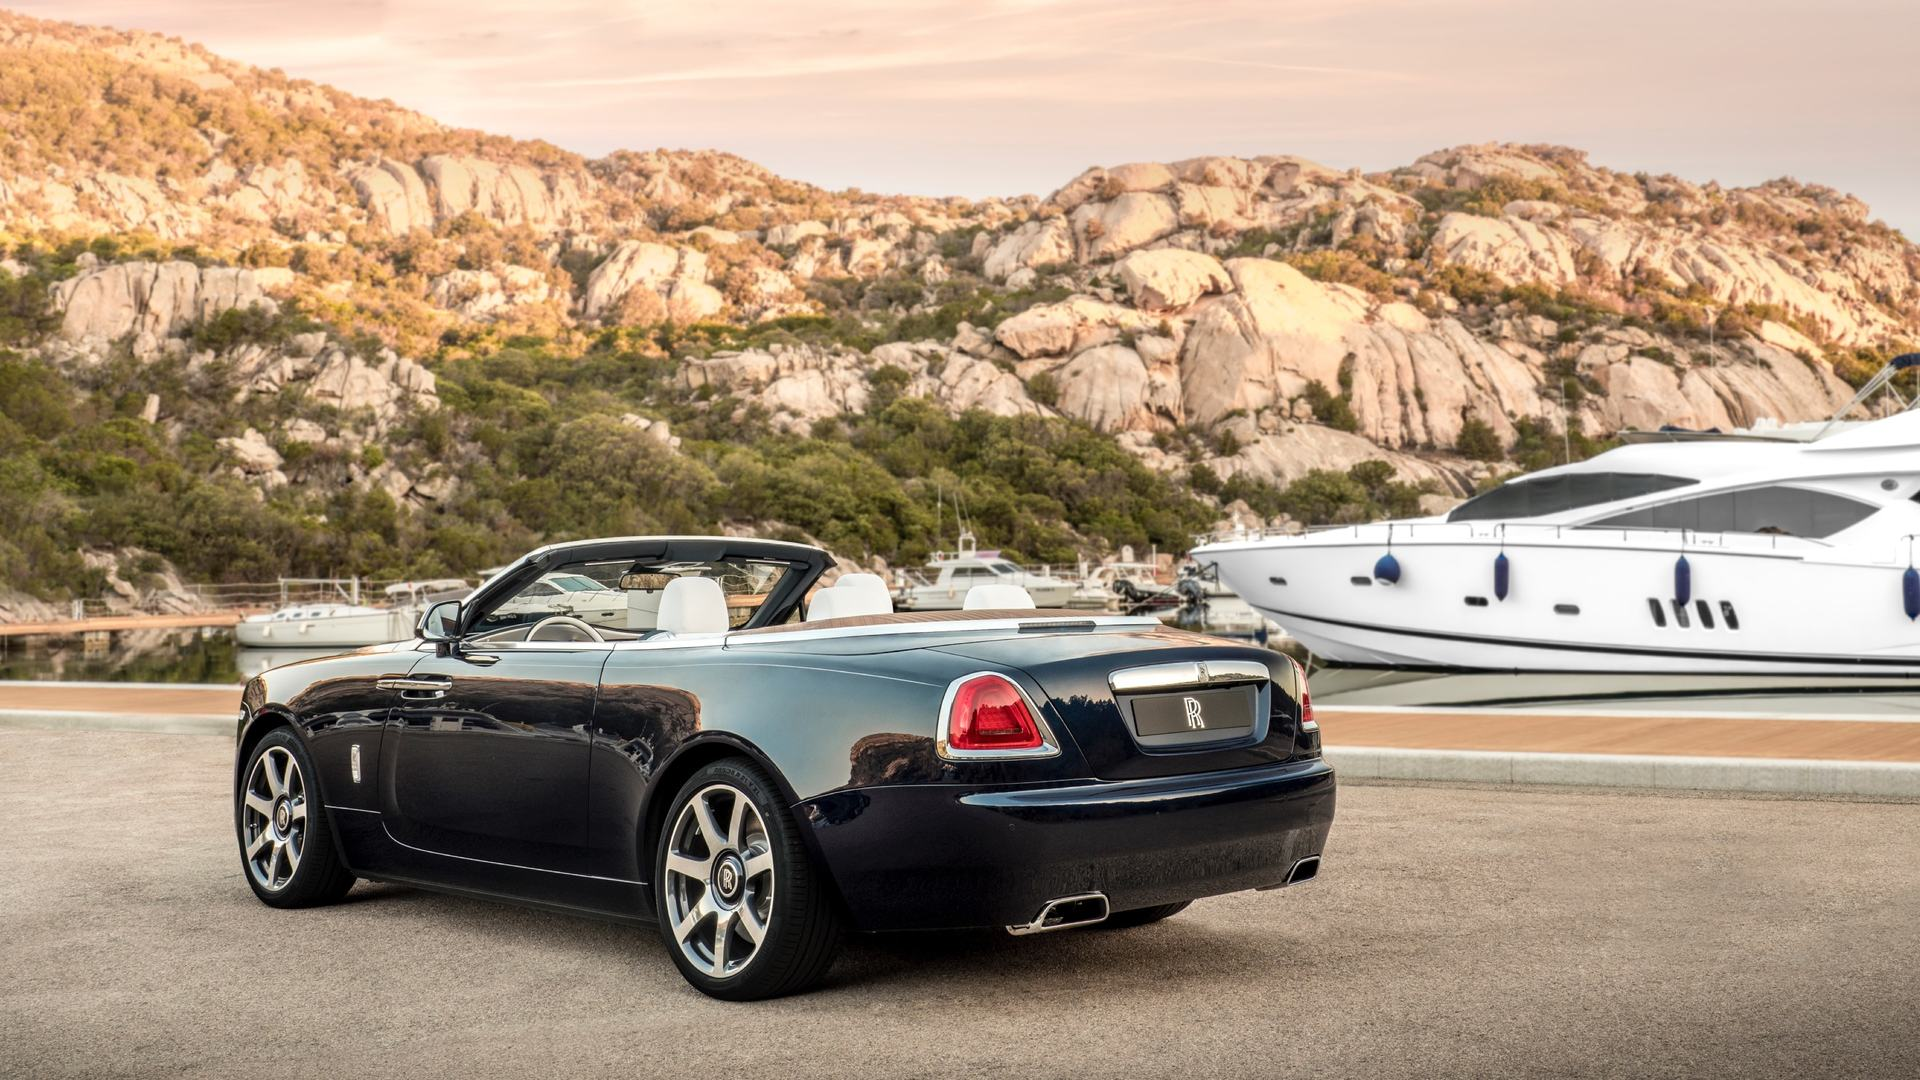 Rear view of Rolls-Royce Dawn Porto Cervo next to a boat